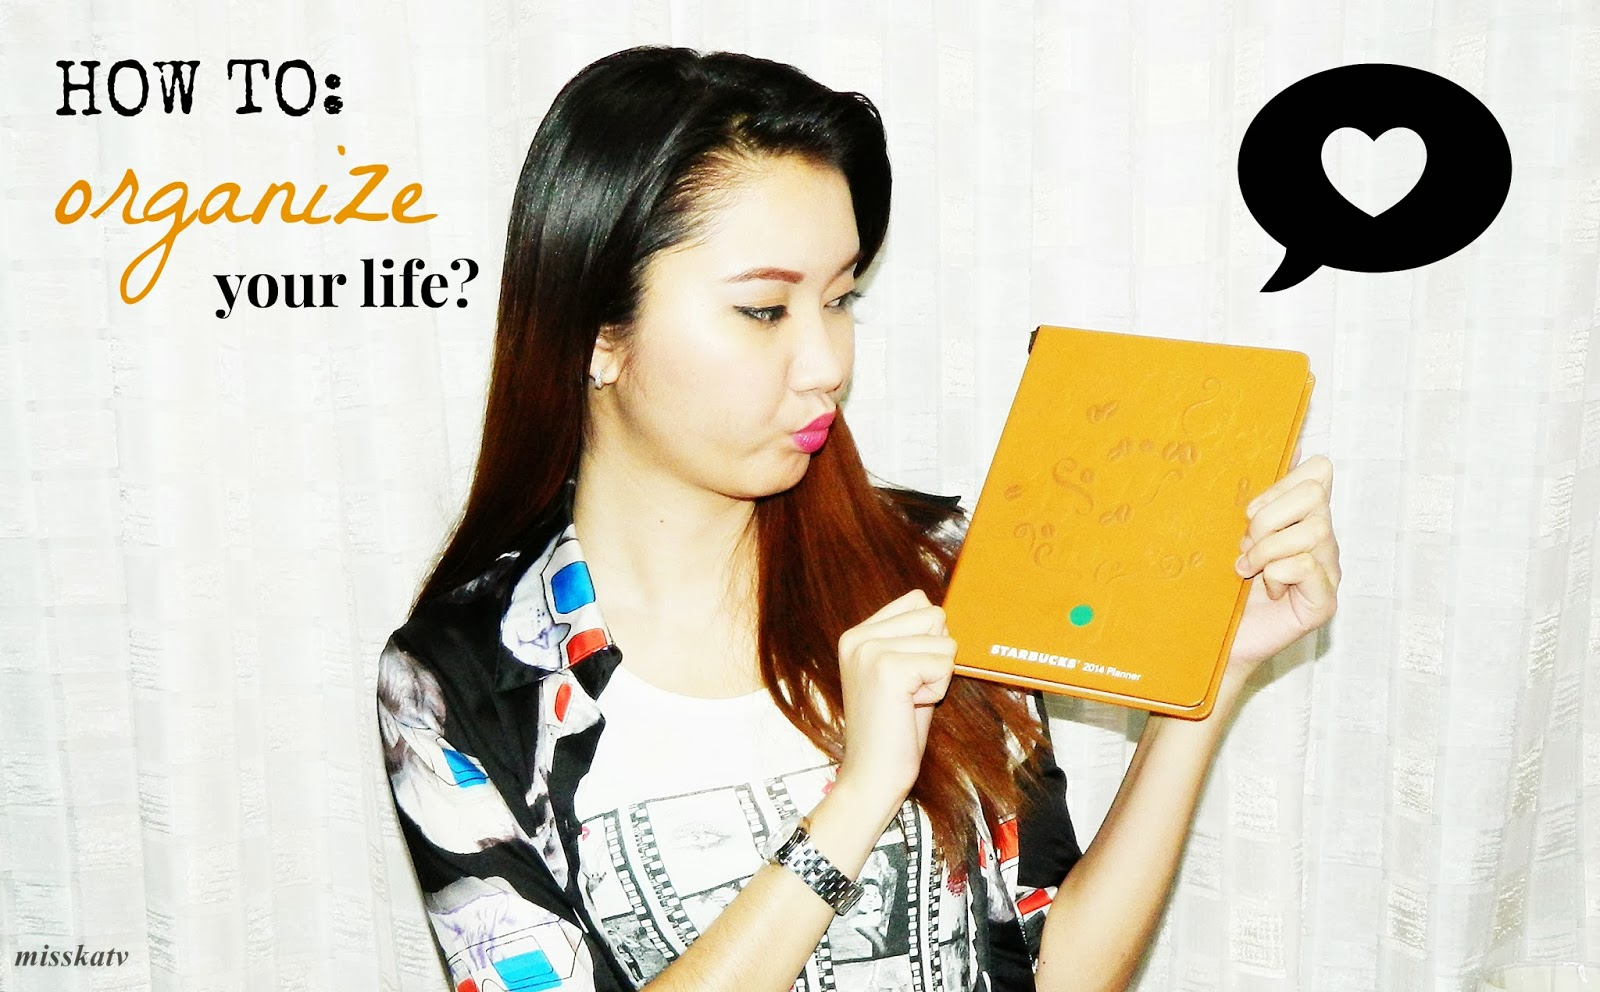 starbucks 2014 planner philippines how to organize your life blog post article viral tips